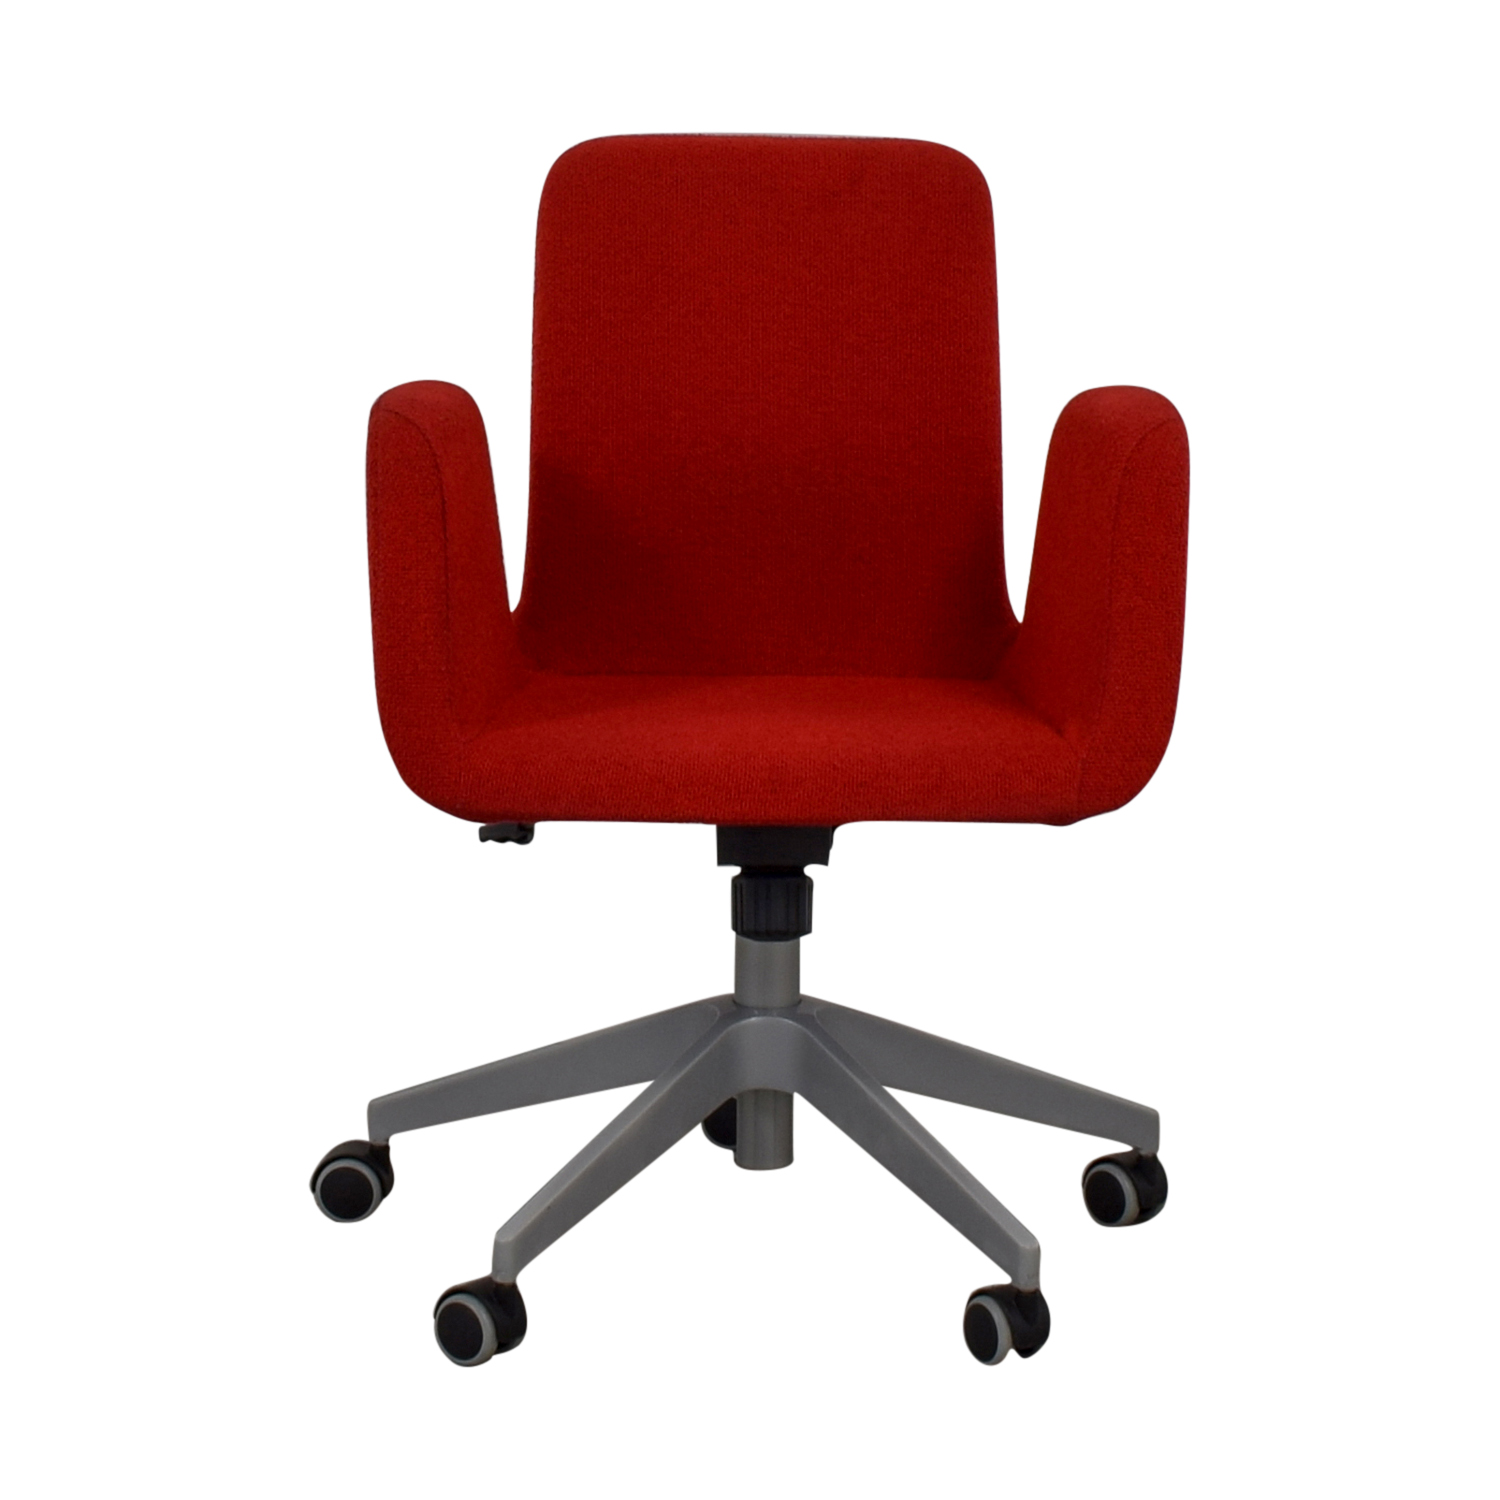 Red Desk Chair 79 Off Ikea Ikea Patrik Red Rolling Desk Chair Chairs